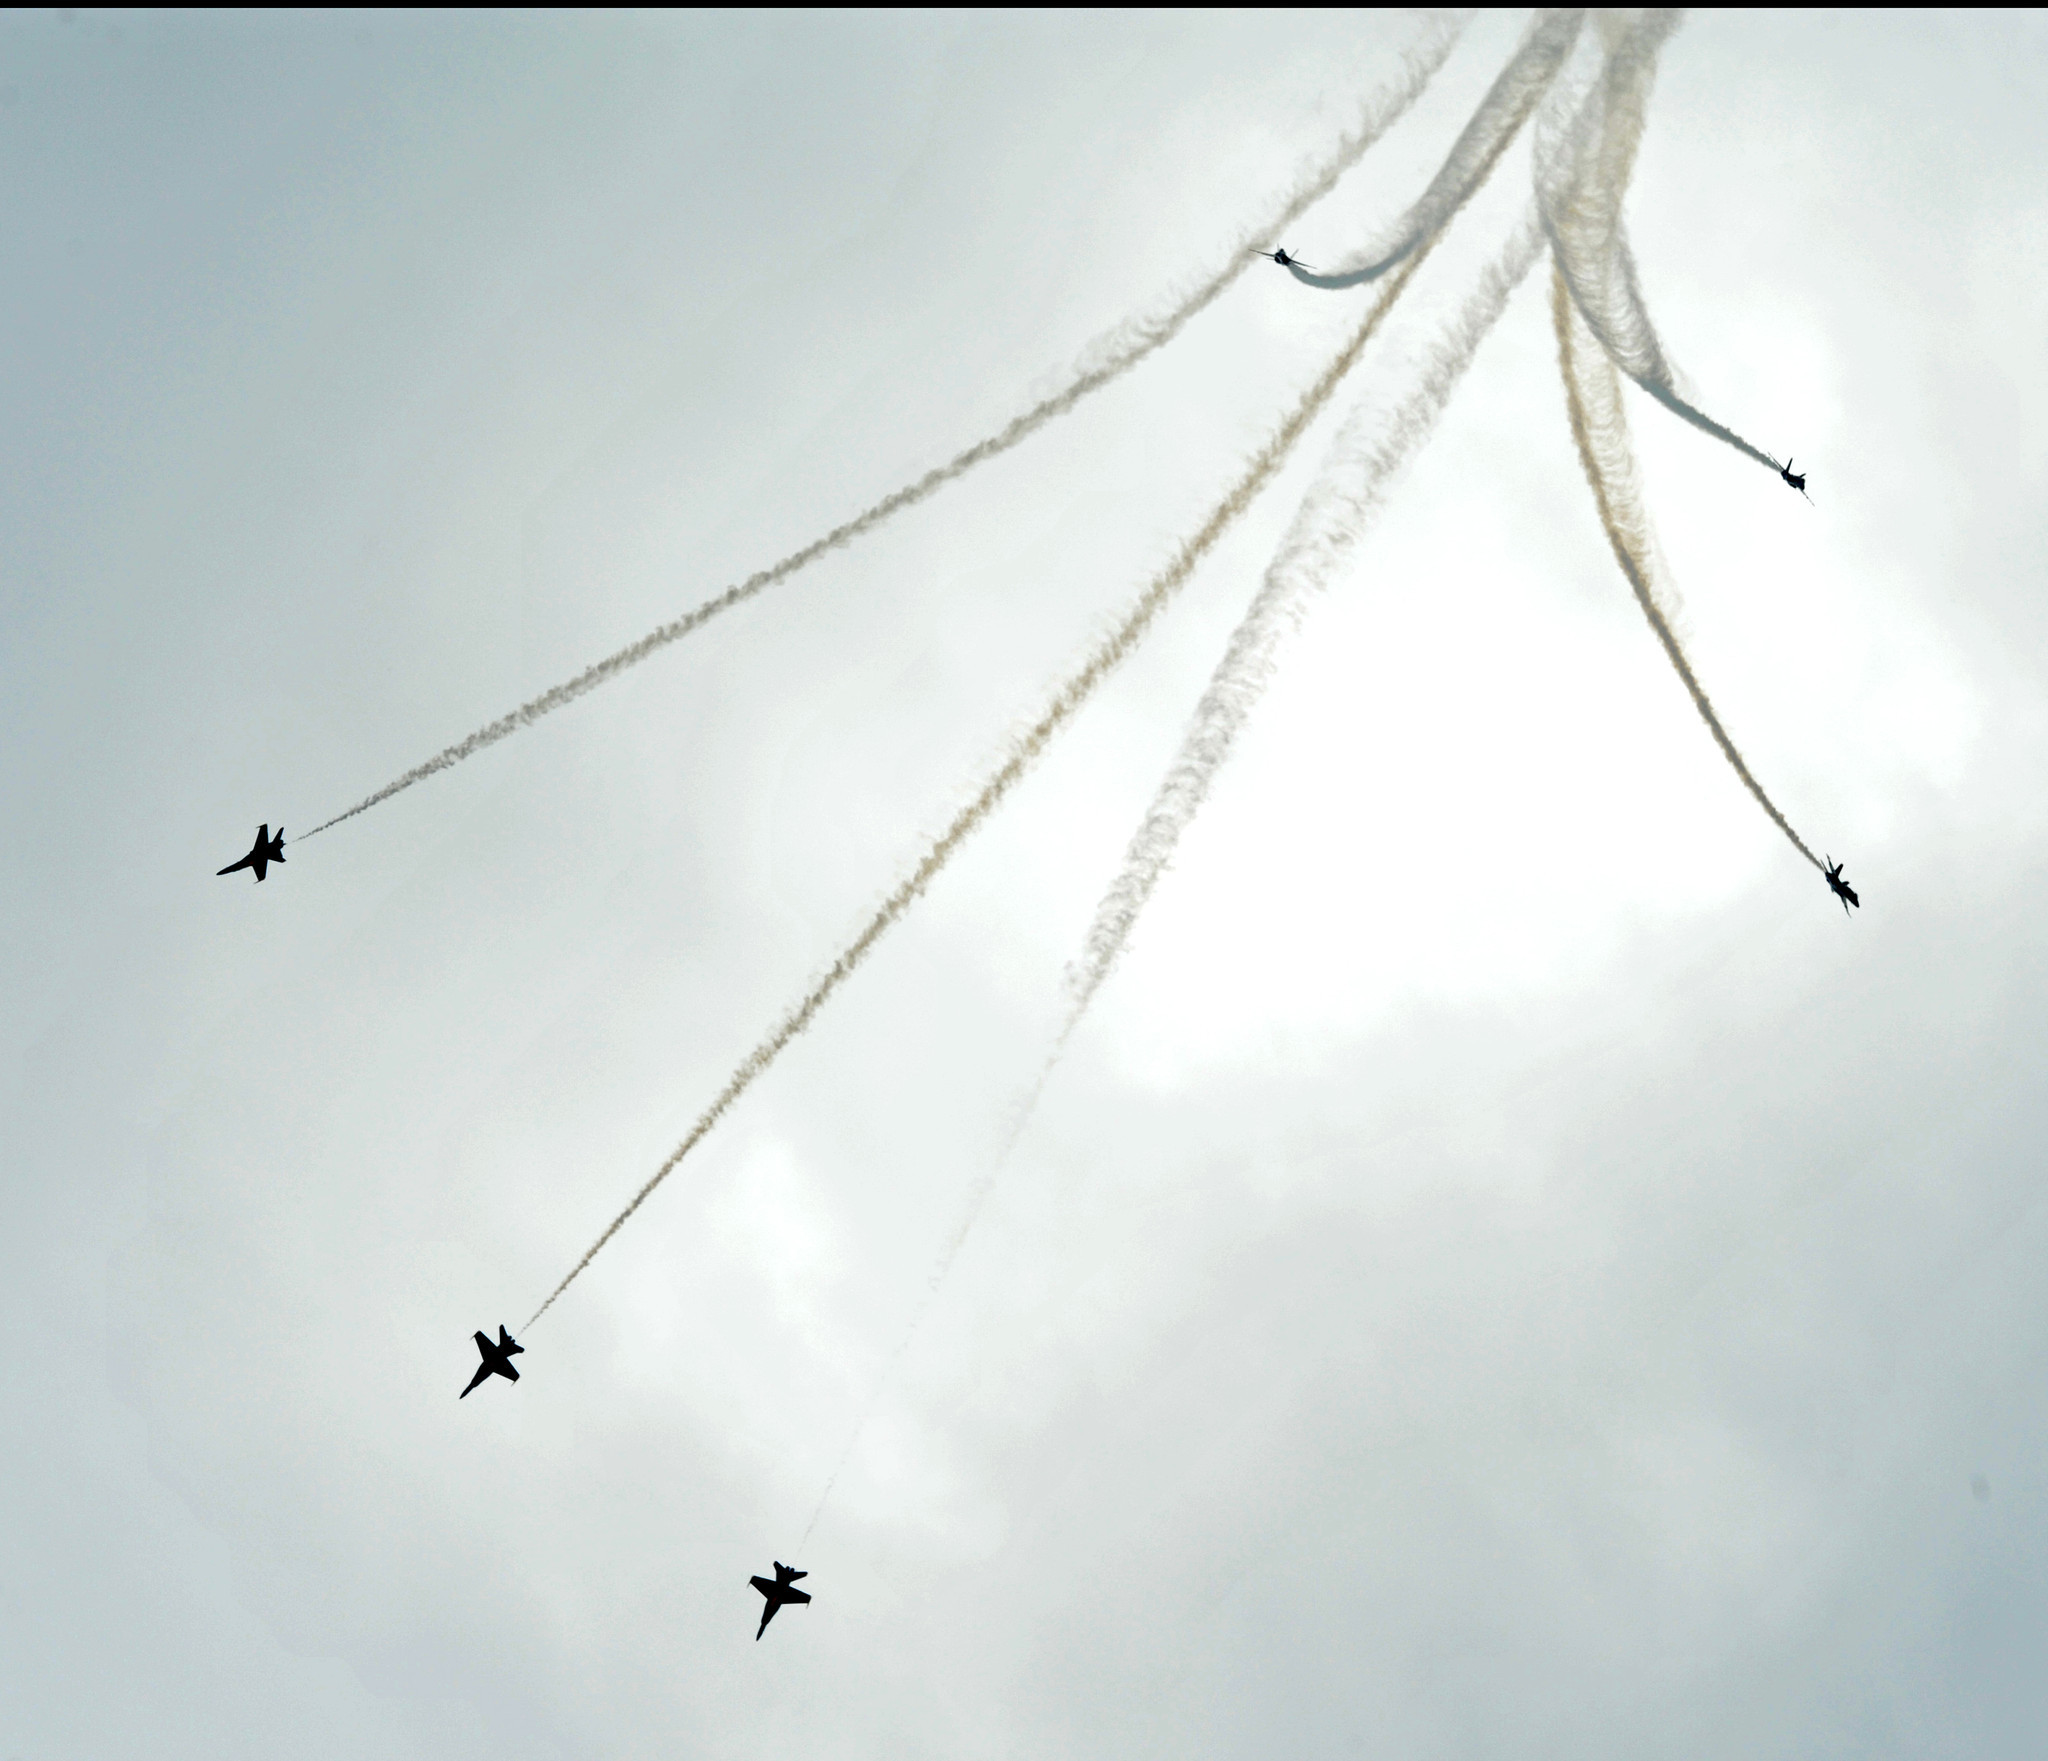 Blue Angels fly by [Pictures] - Flying